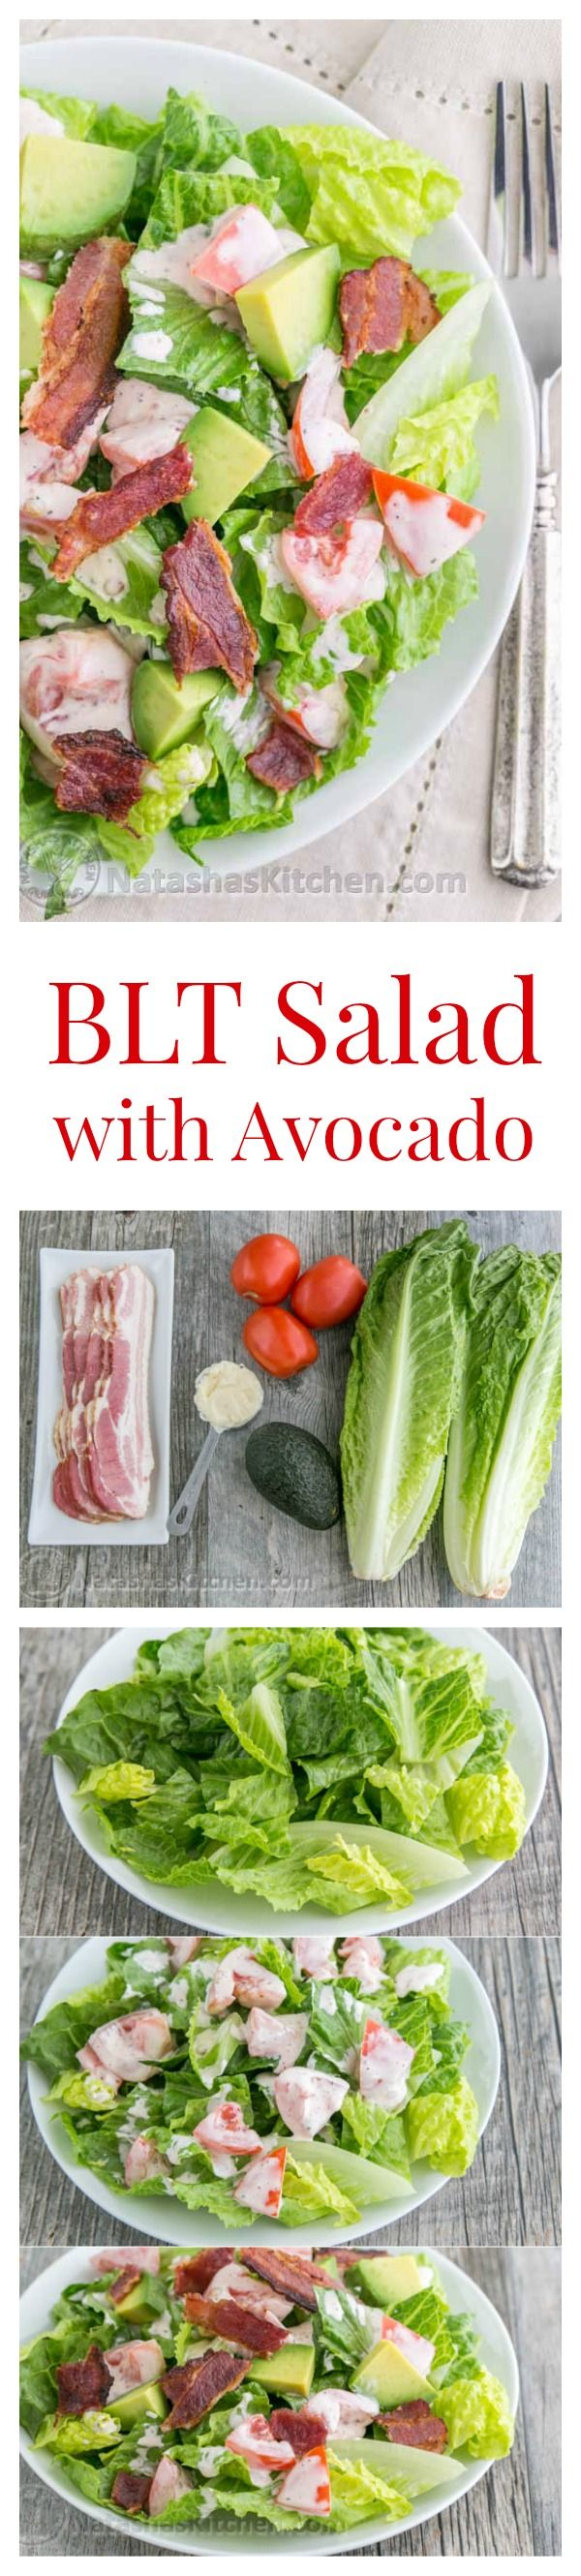 BLT Salad with Avocado from the @skinnytaste cookbook - Everything we love about a BLT in Salad form!   natashaskitchen.com